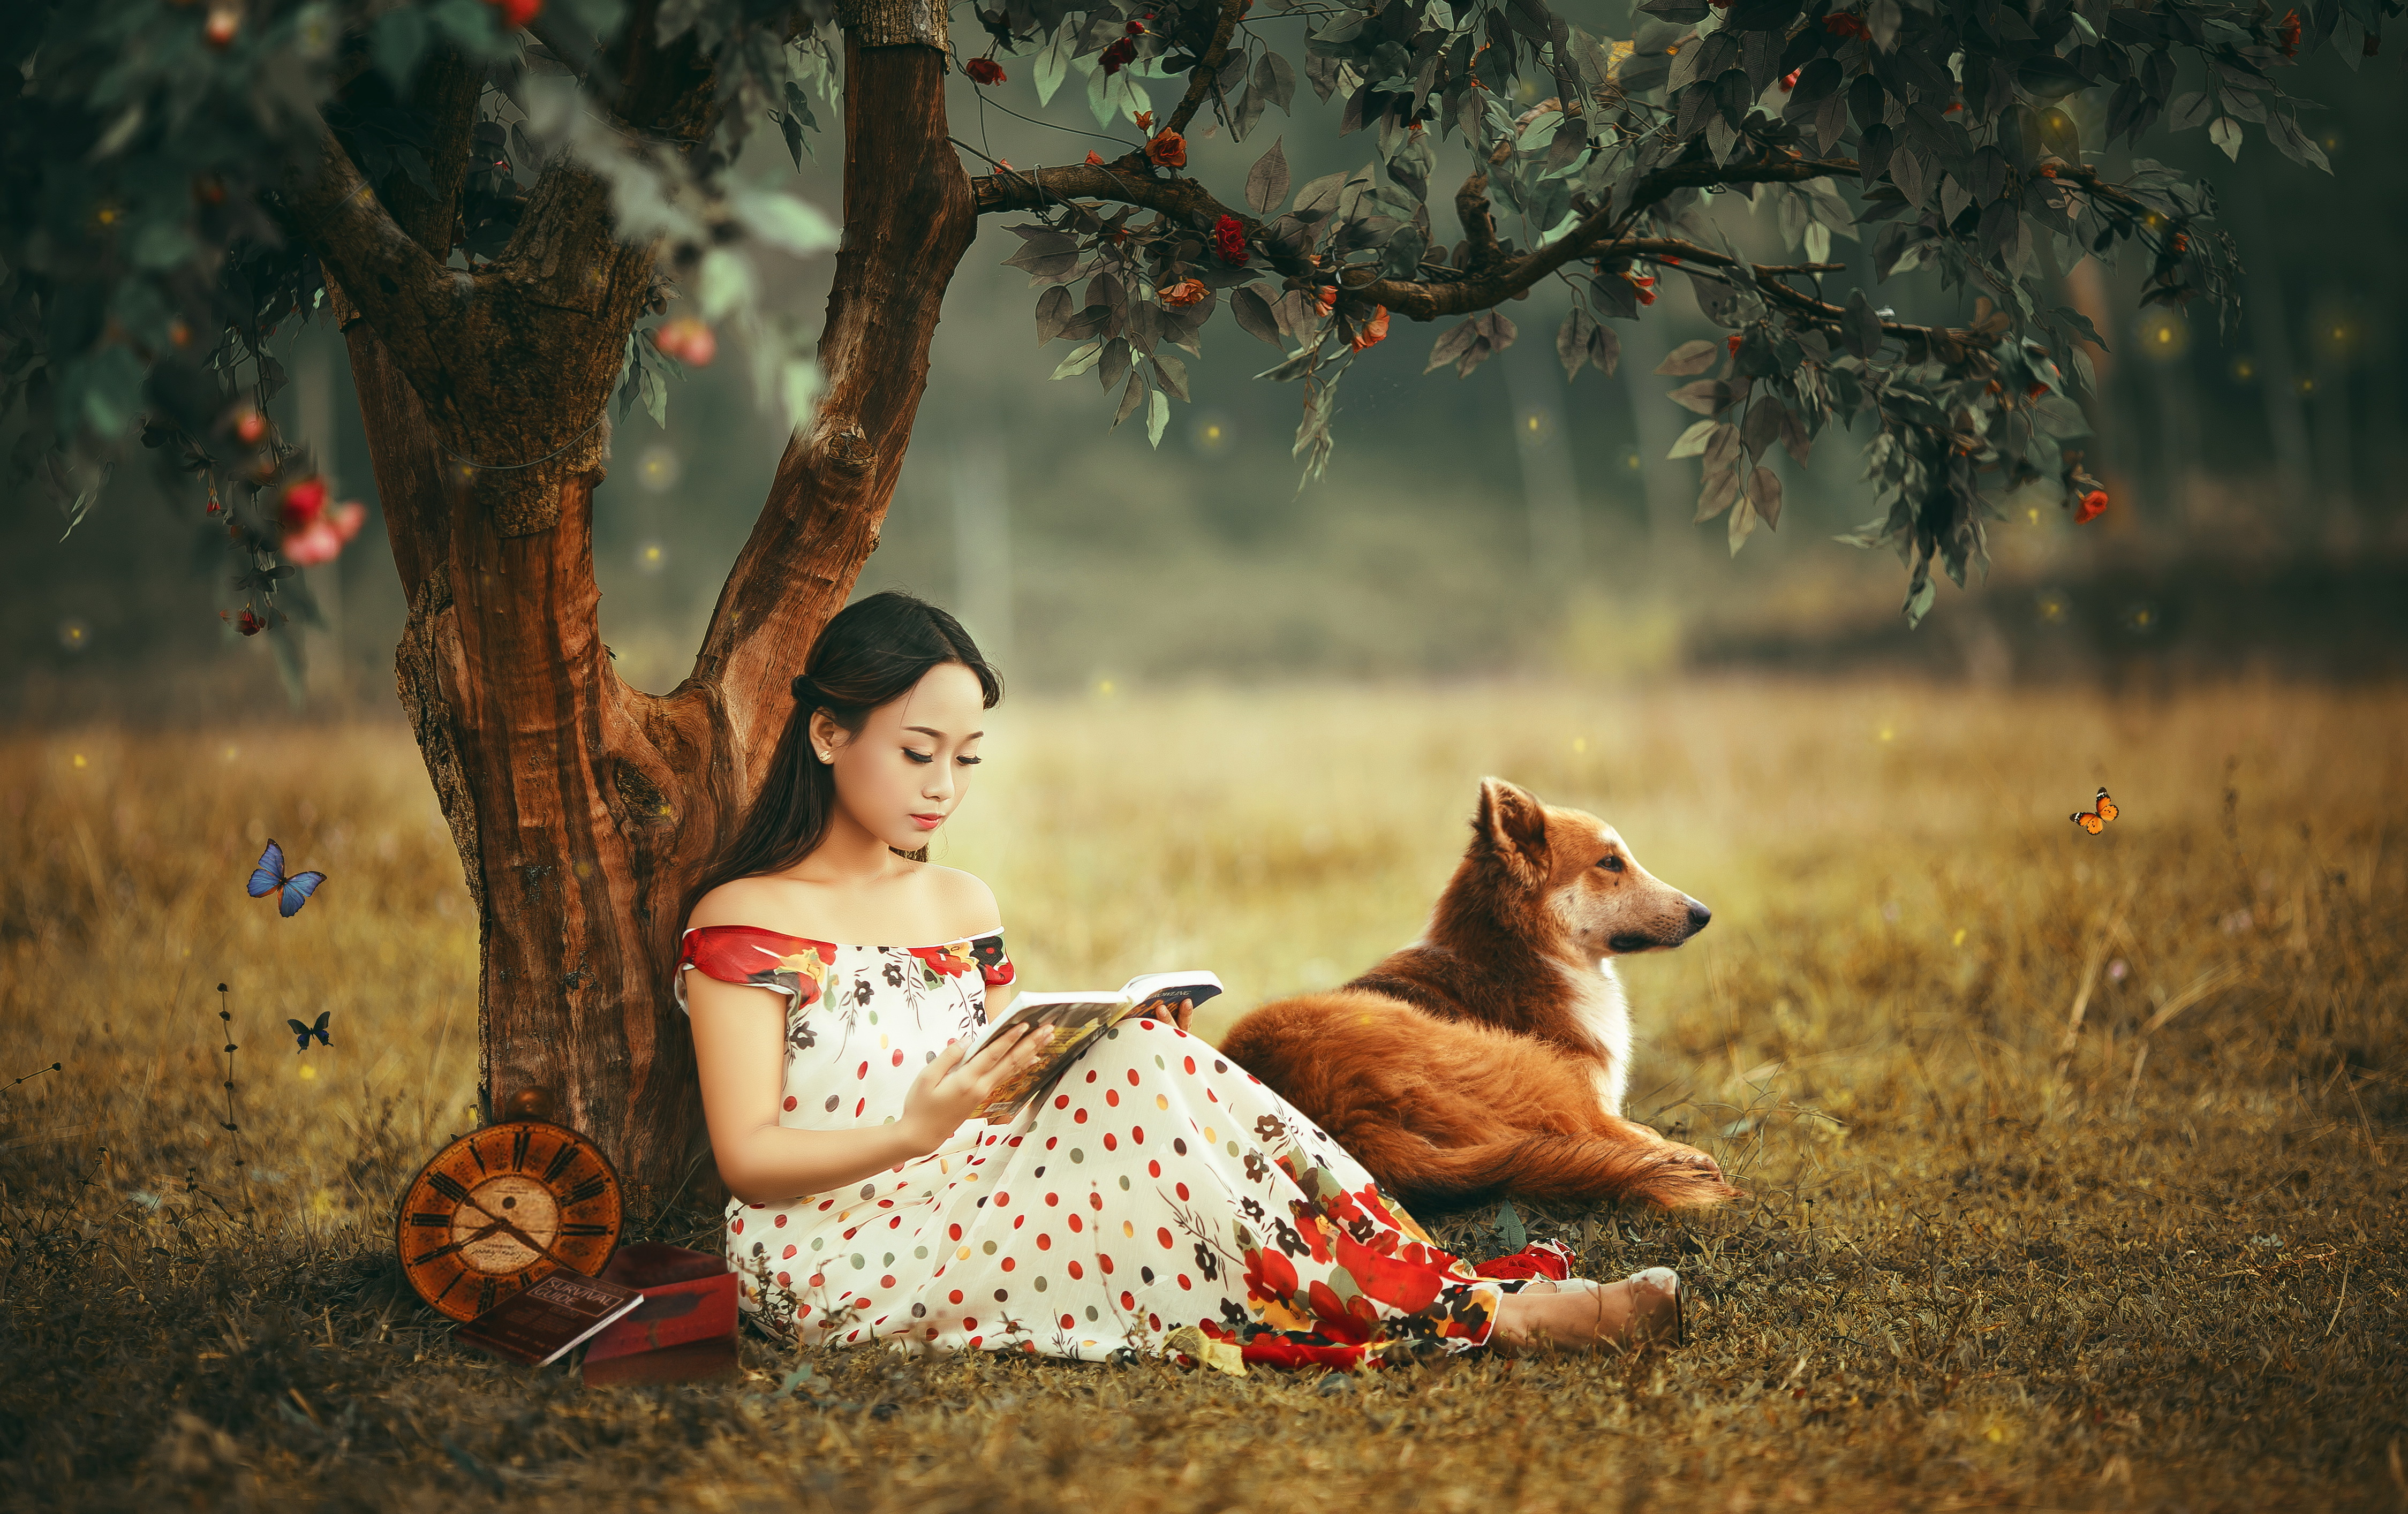 Pictures Dogs female Asiatic Trees Animals 4497x2828 dog Girls young woman Asian animal